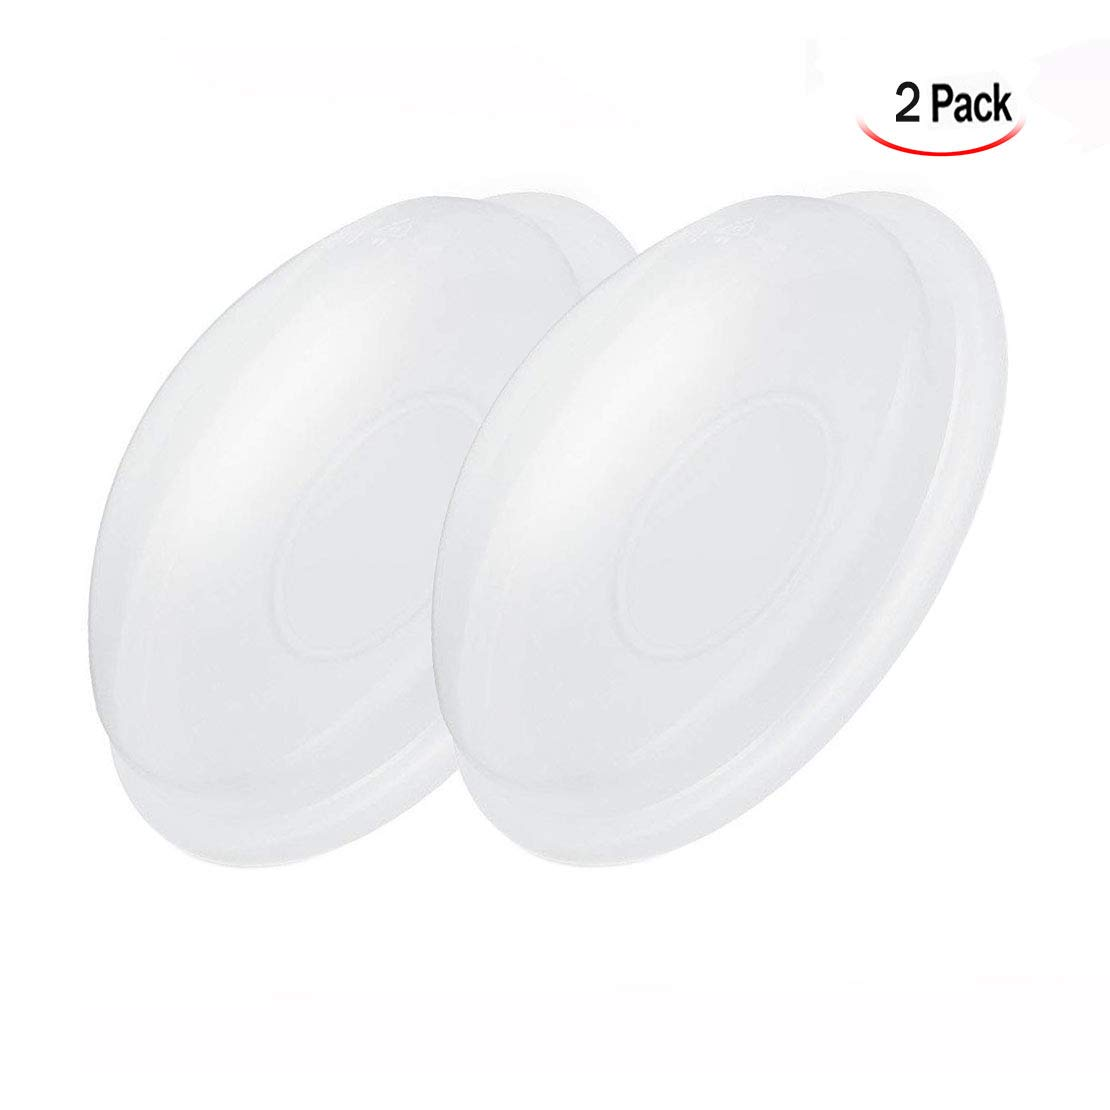 Reusable Breast Shells Nursing Cups for Nursing Moms Xrten 2Pcs Soft and Comfortable Silicone Breast Milk Saver